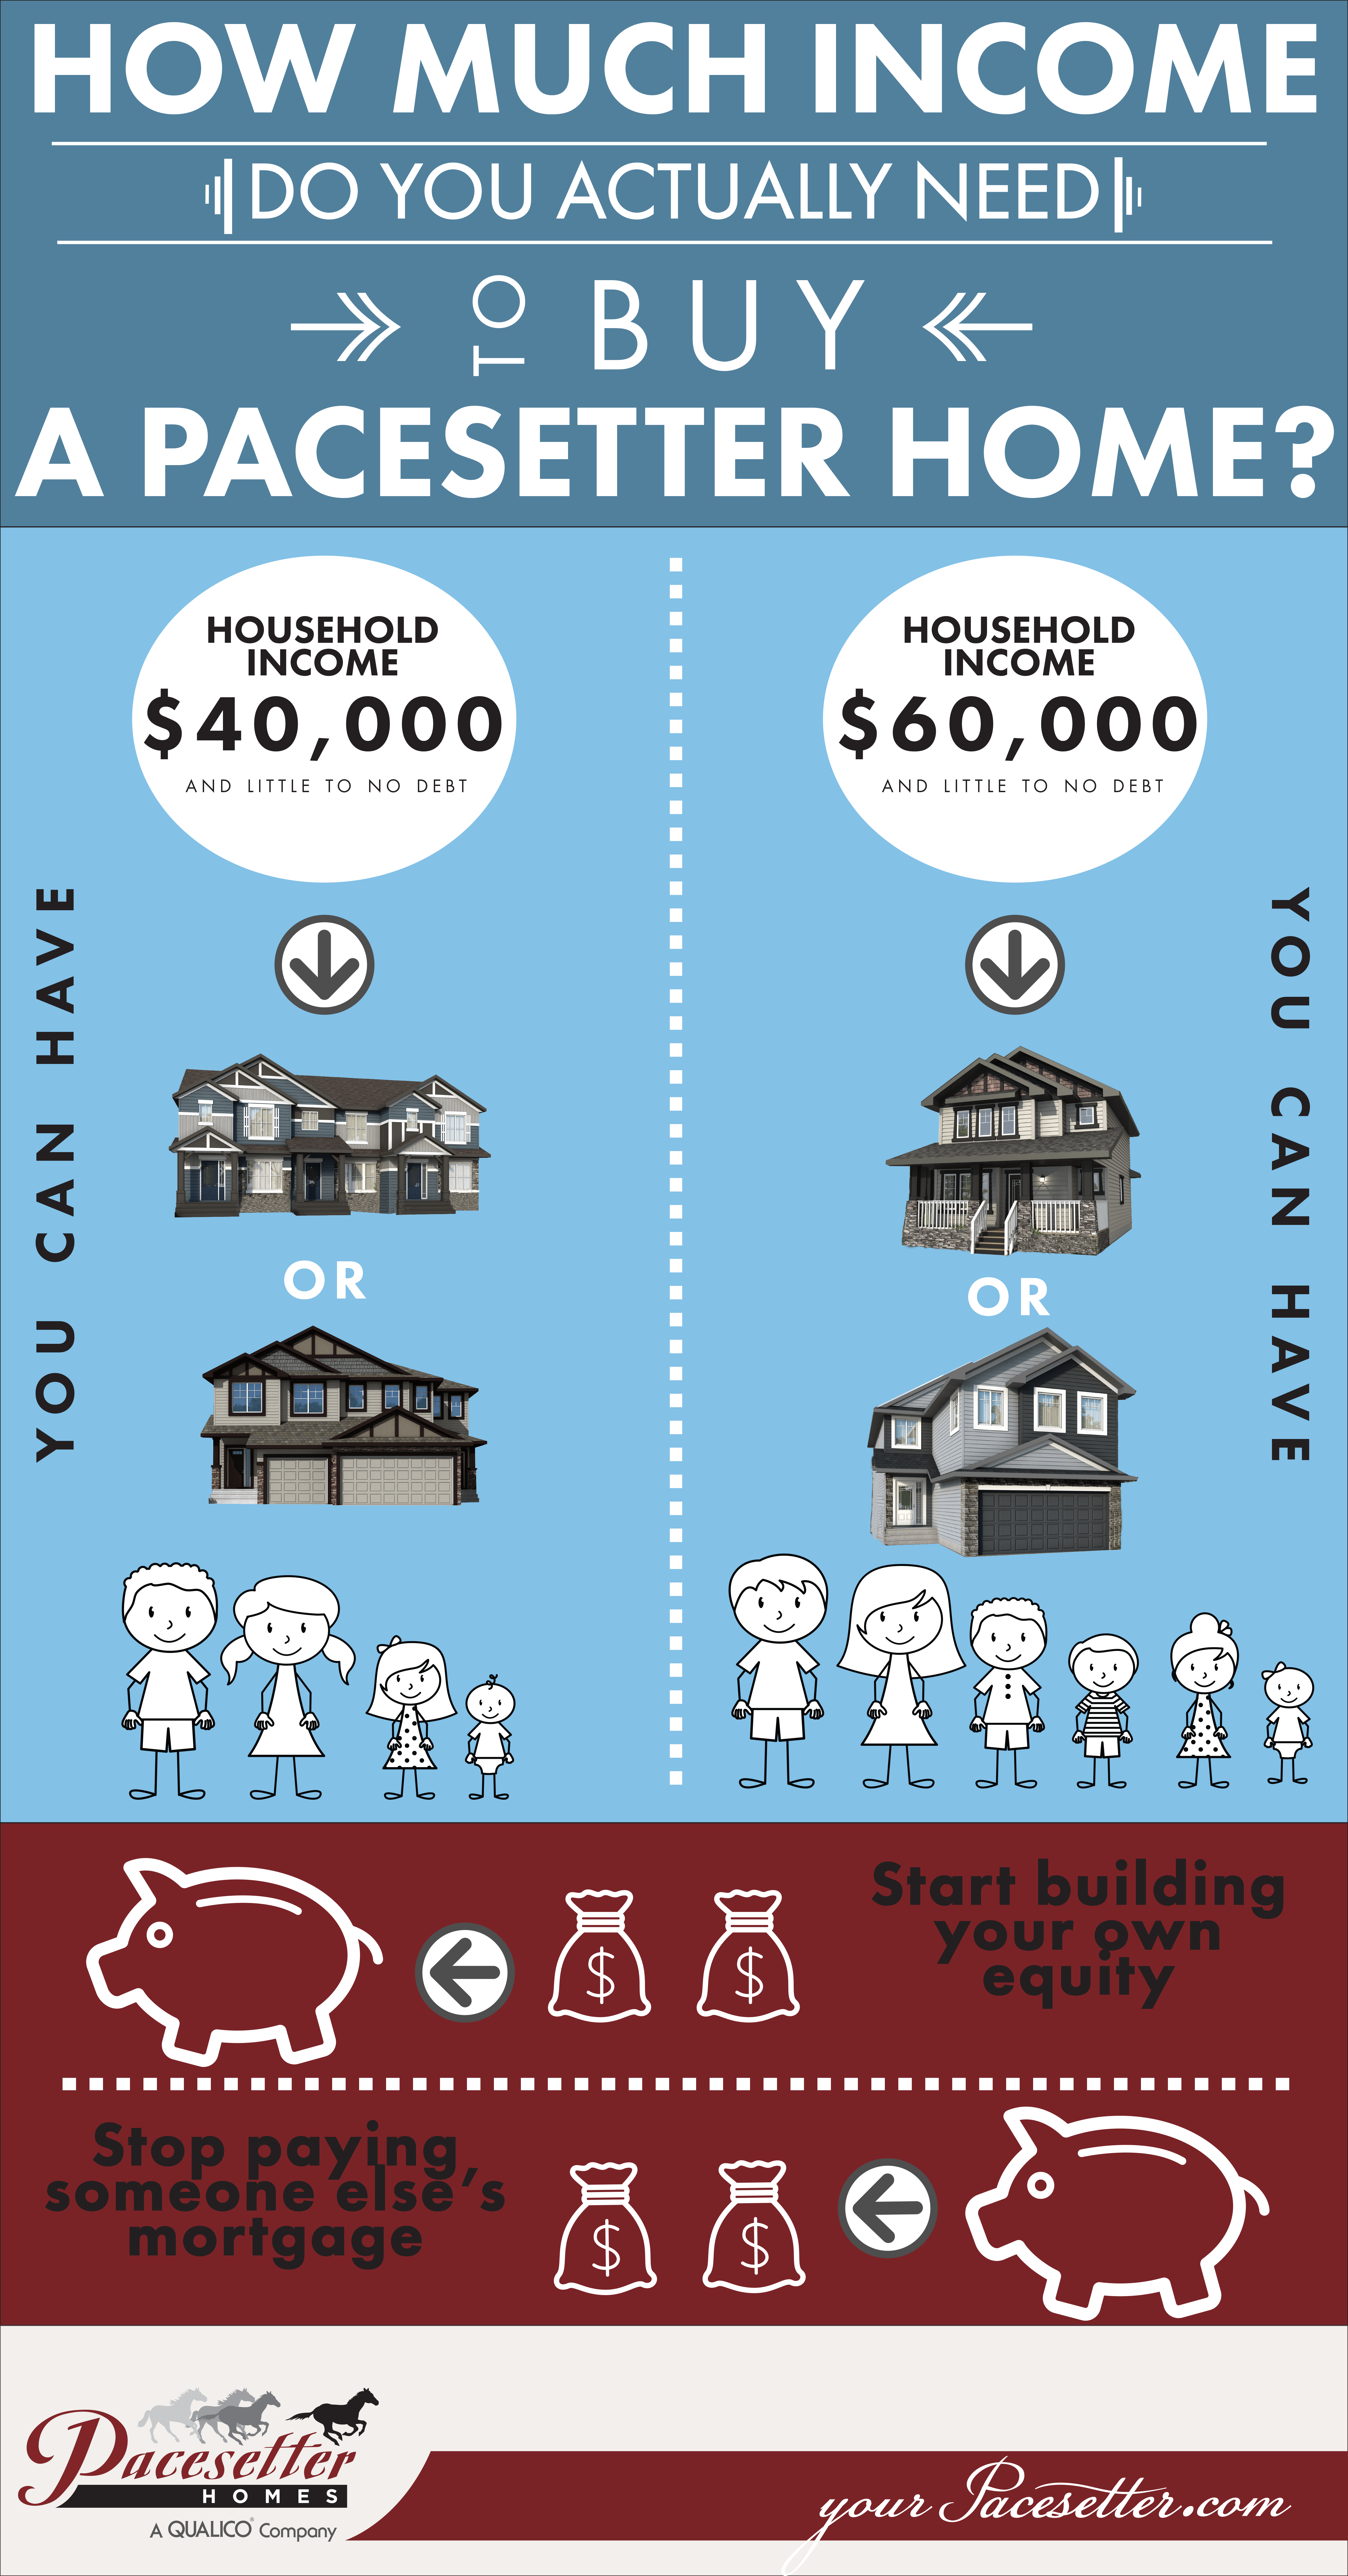 Affordable Mortgage For 100k Income